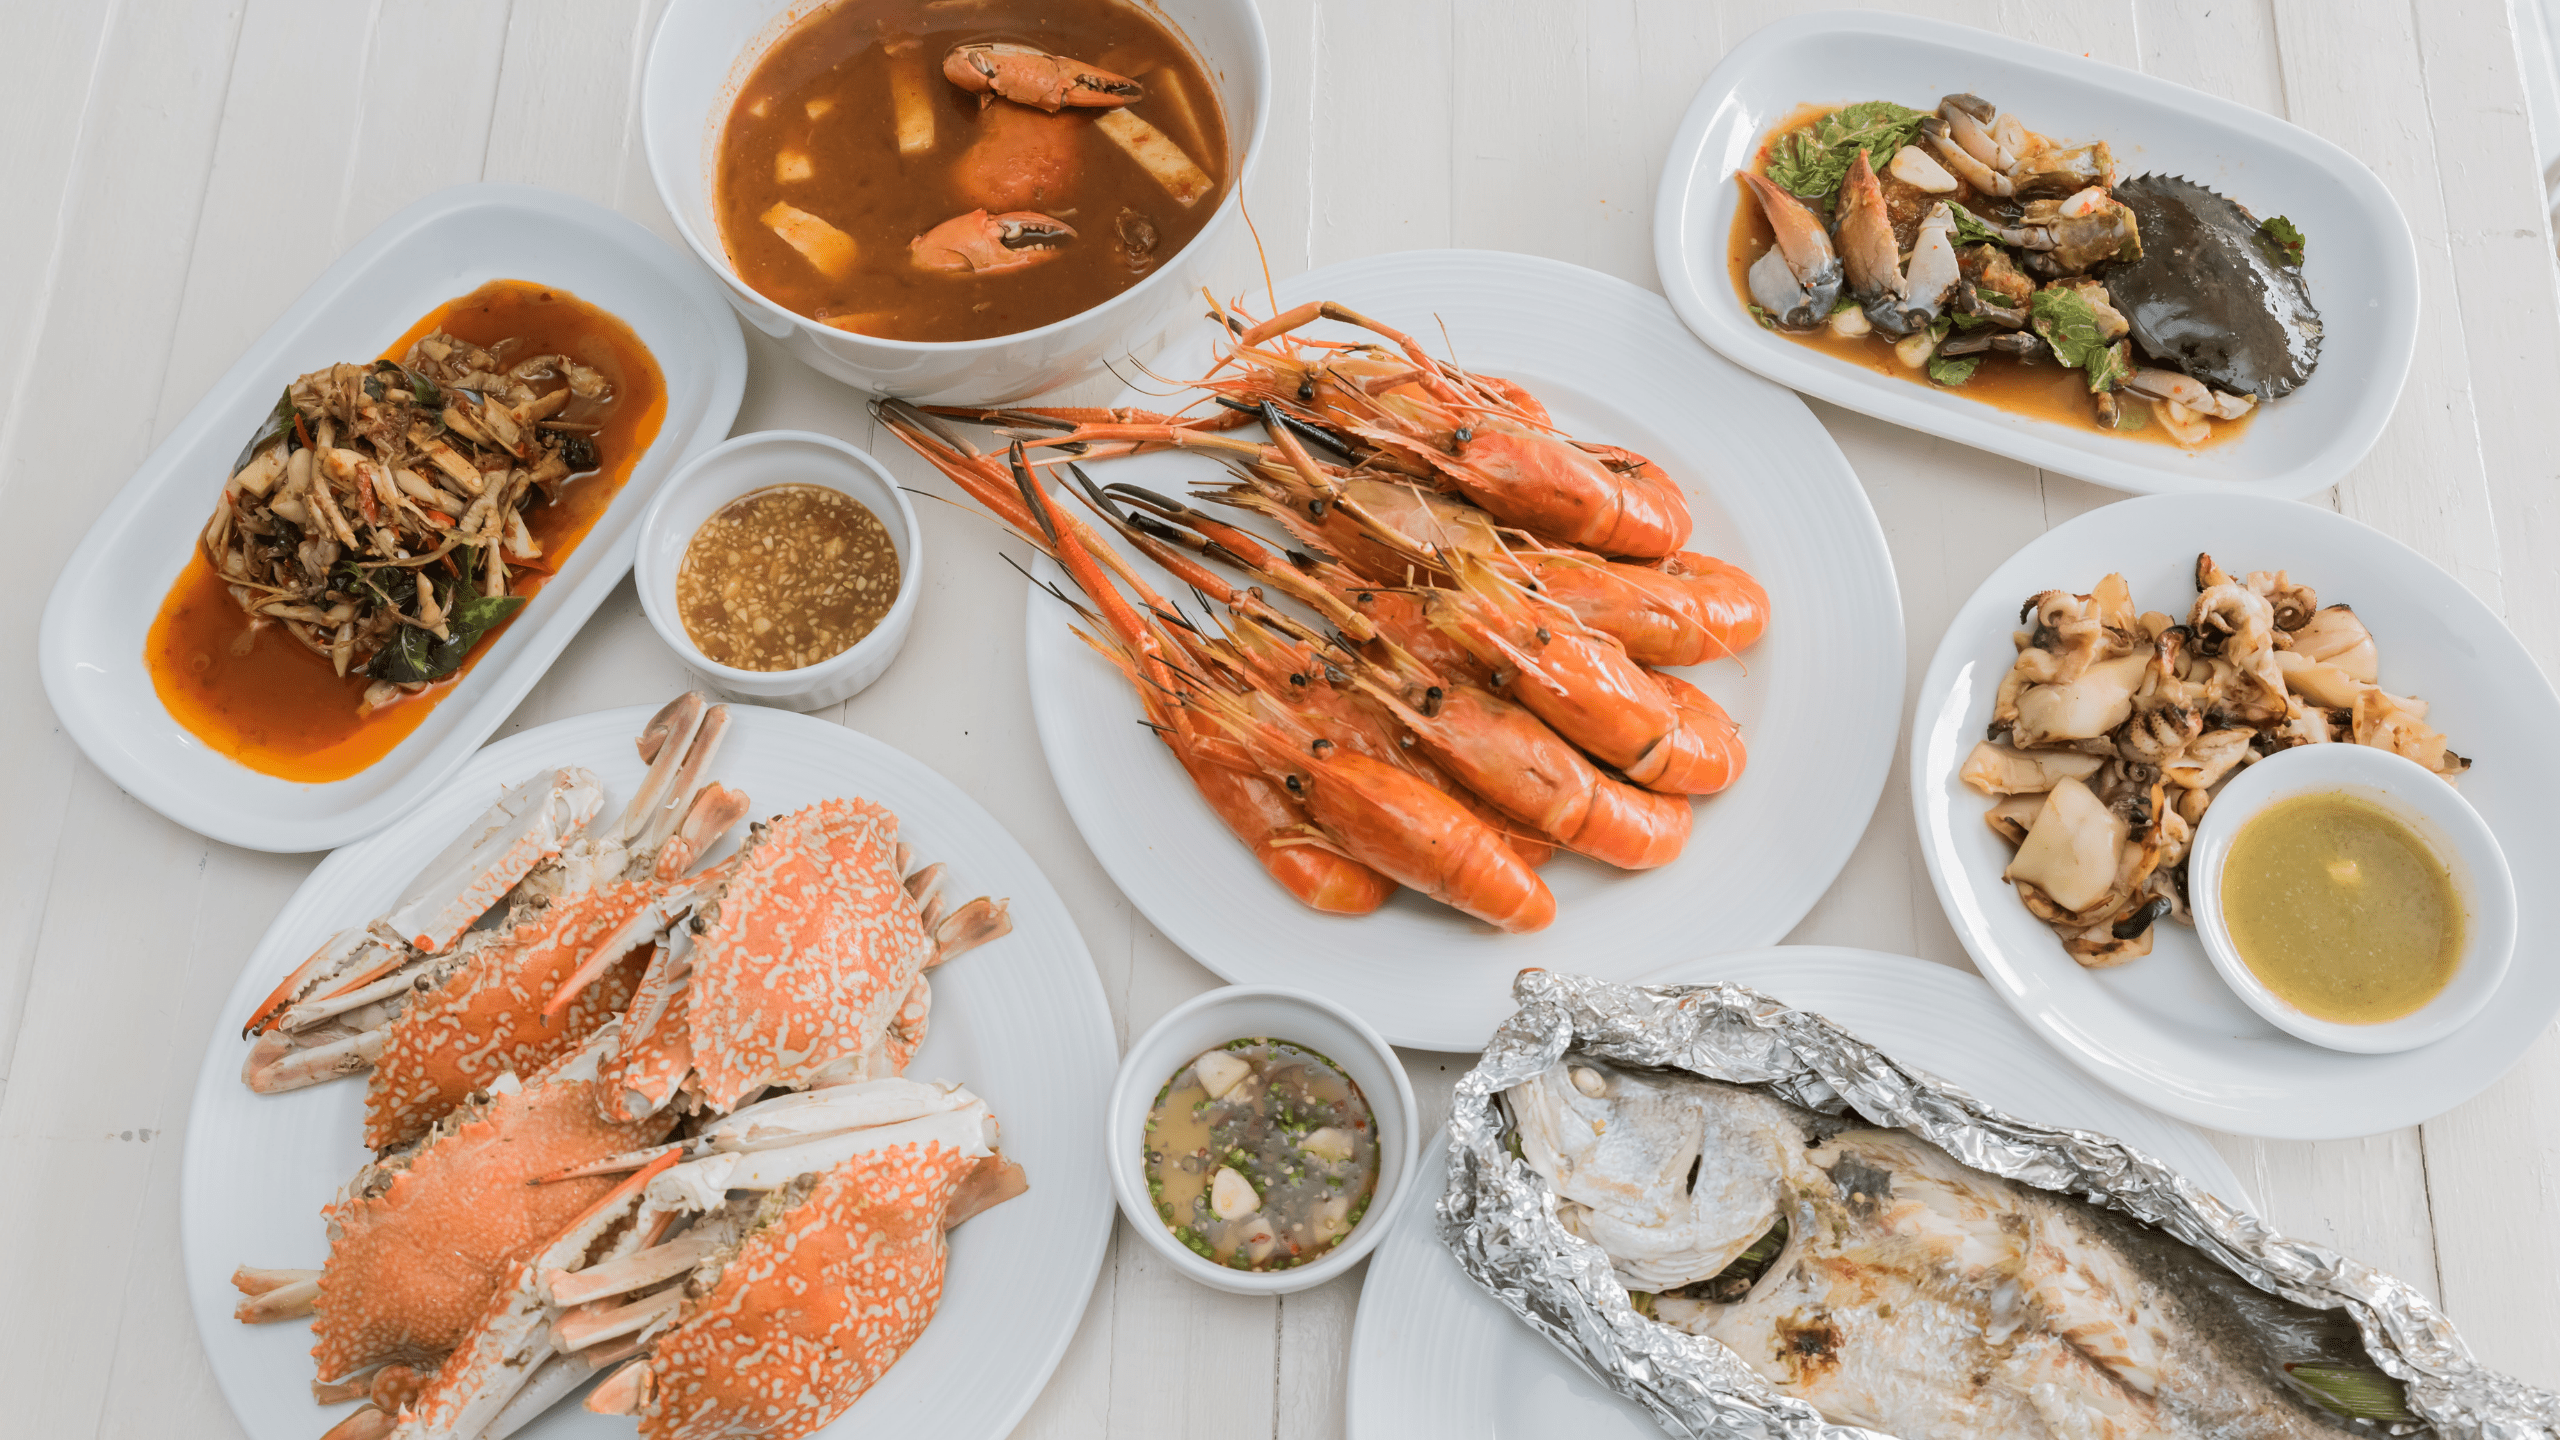 4 Facts about Seafood Allergies Before Loving Thai Food